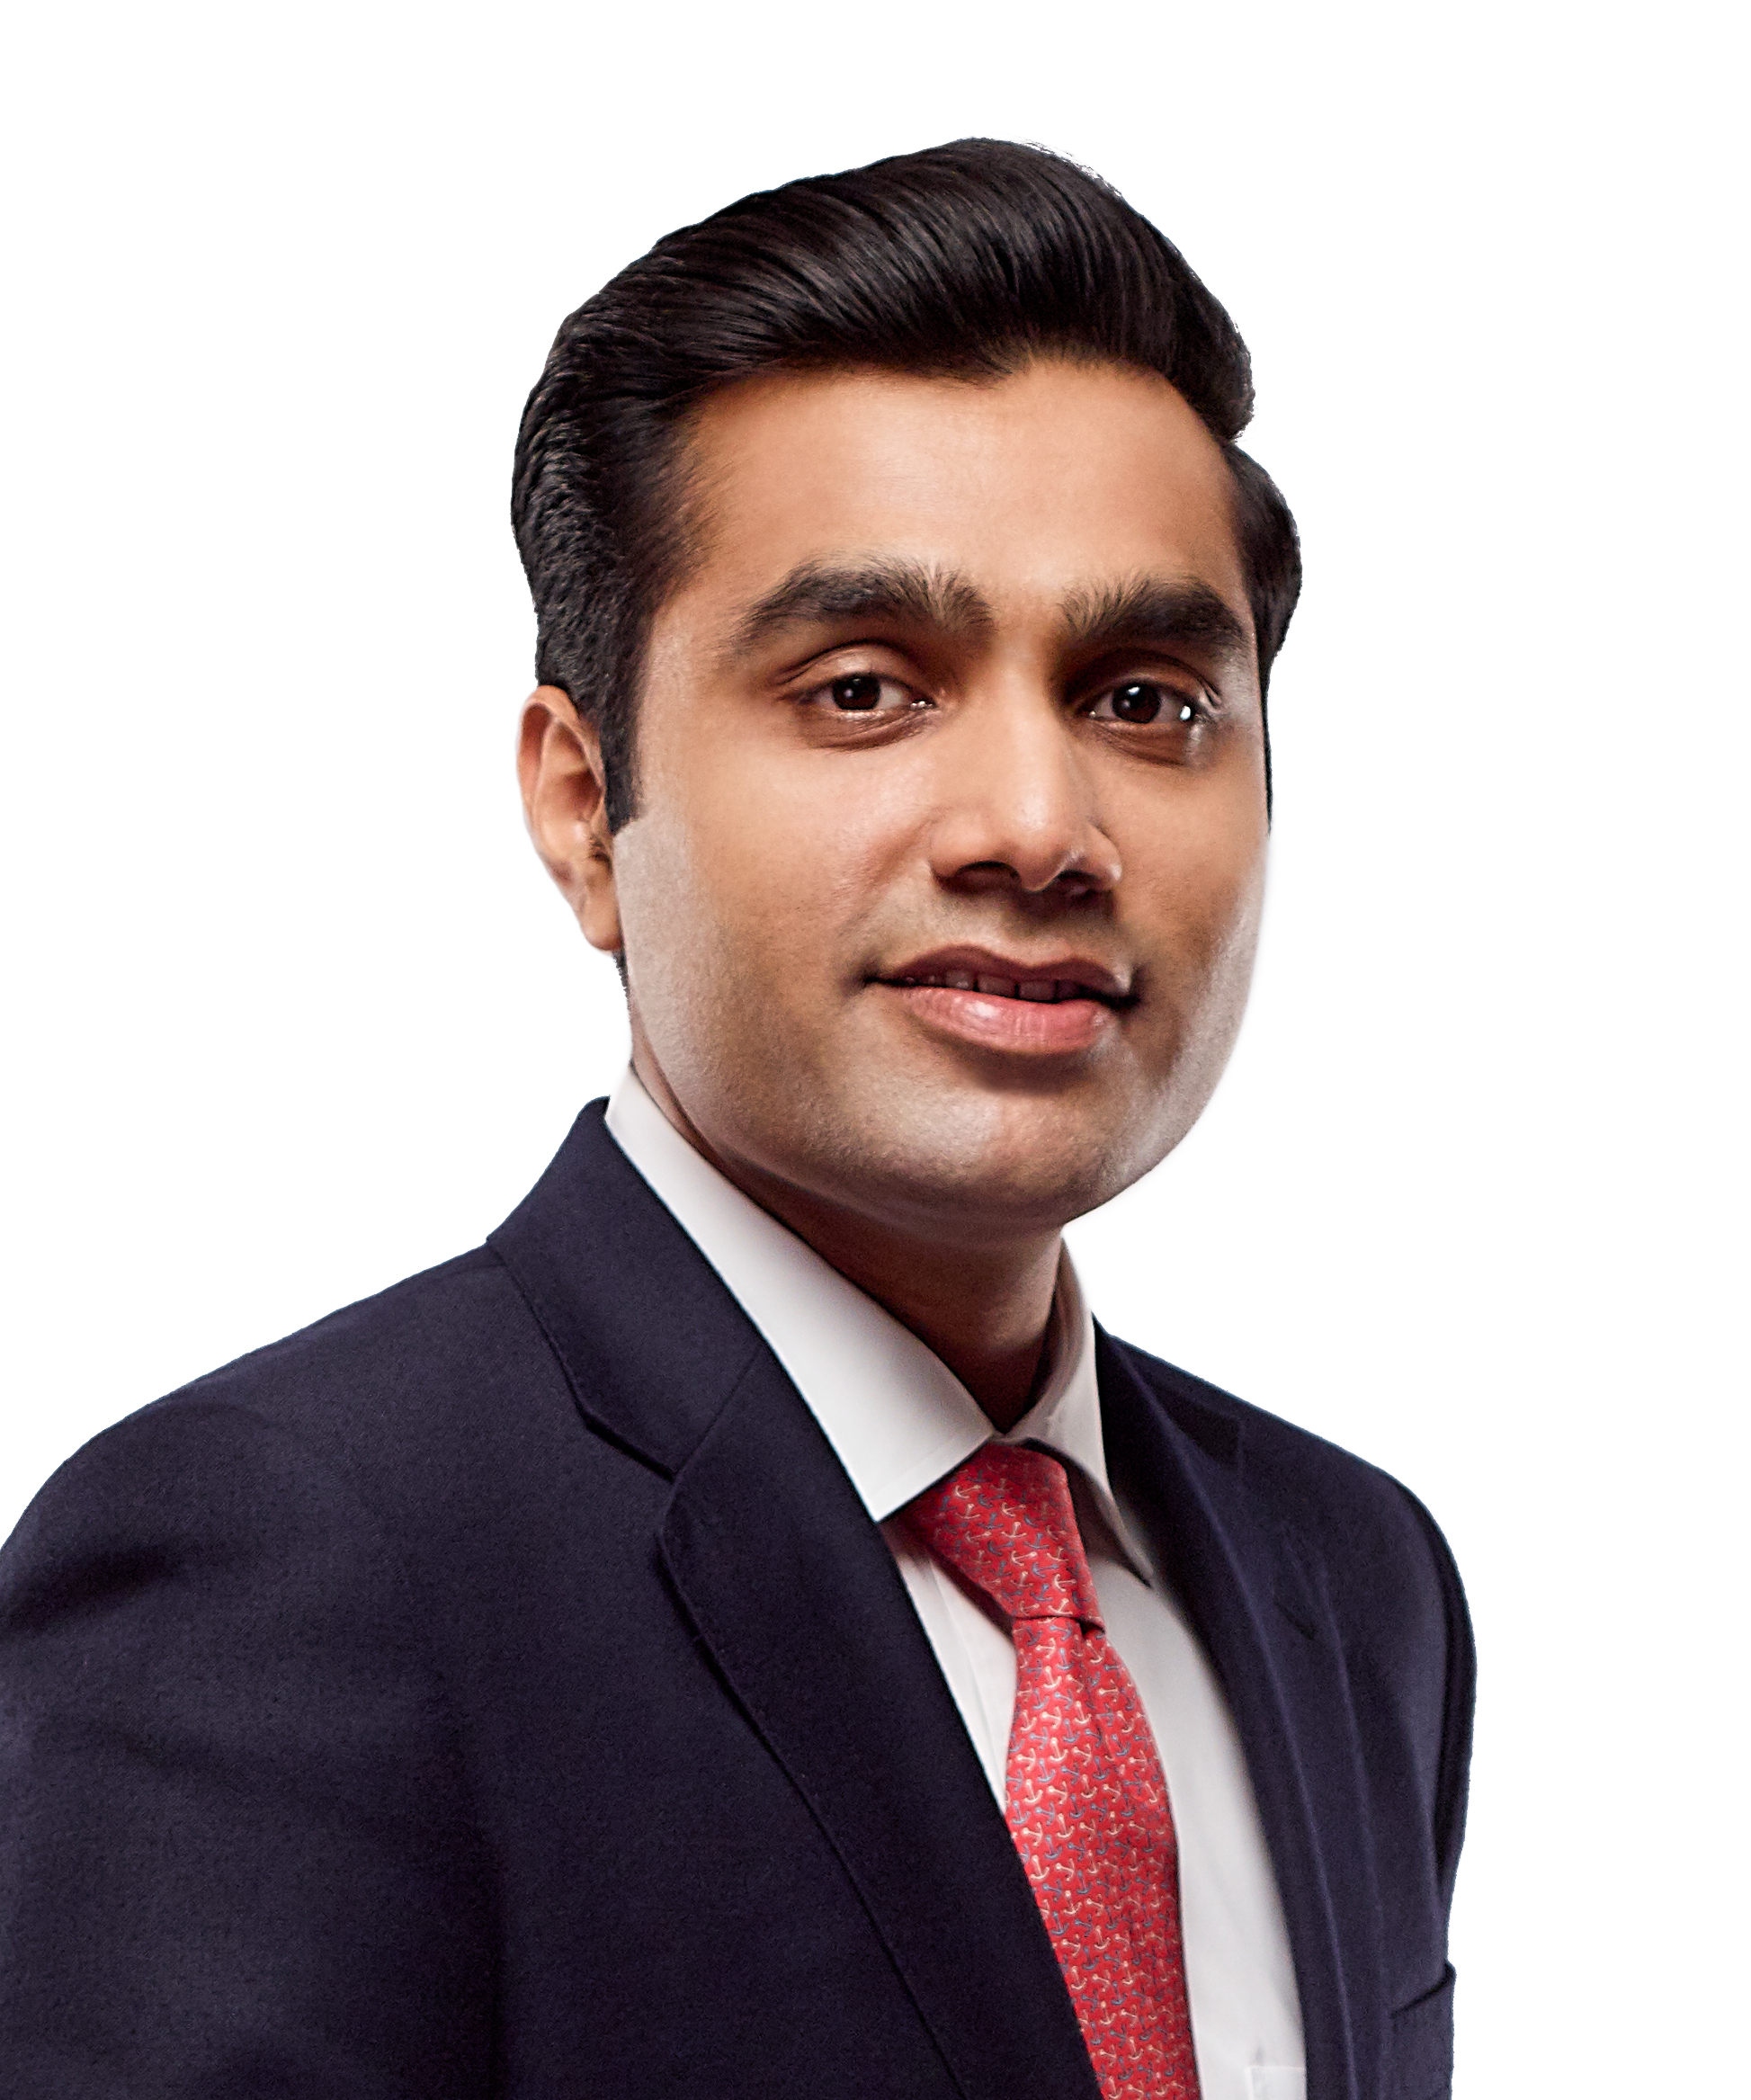 Adani Ports and Special Economic Zone Limited announced its operational and financial growth for the second quarter